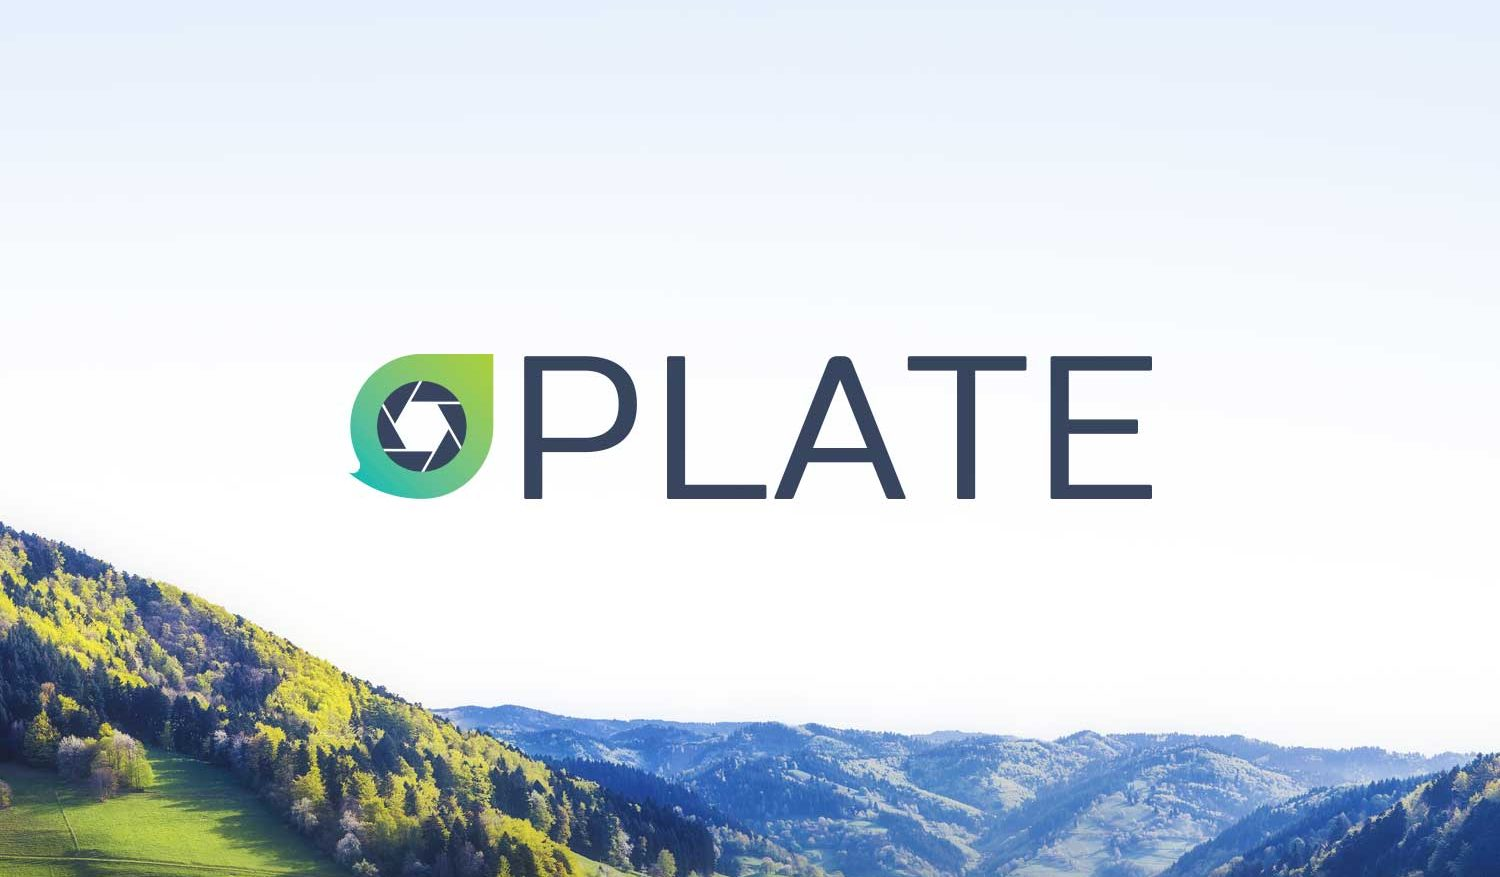 PLATE Conference 2019 - Product Lifetimes and Environment